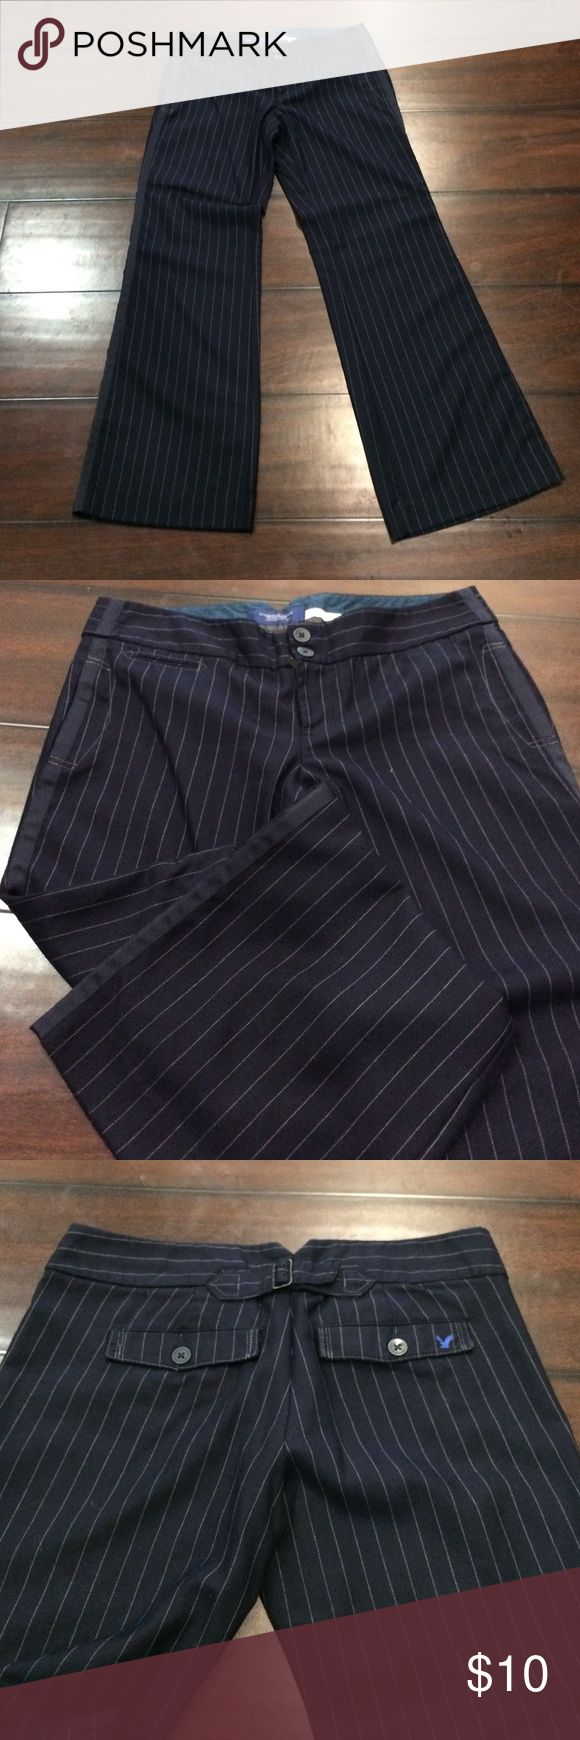 American eagle navy blue pinstripe dress pants American Eagle navy blue pinstripe dress pants American Eagle Outfitters Pants Trousers